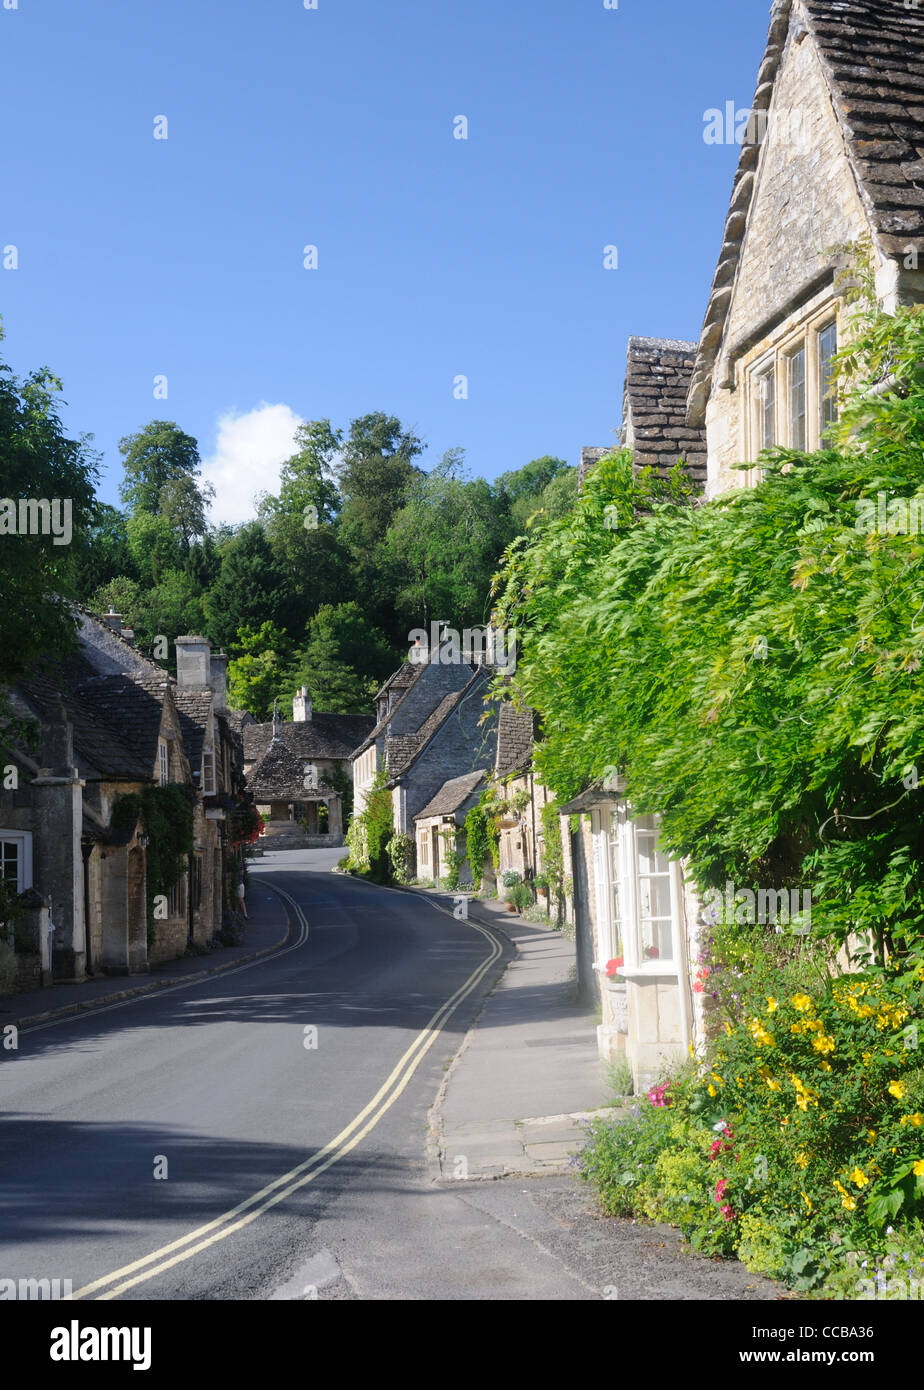 Water Street, in the picturesque village of Castle Combe, Wiltshire, England - Stock Image